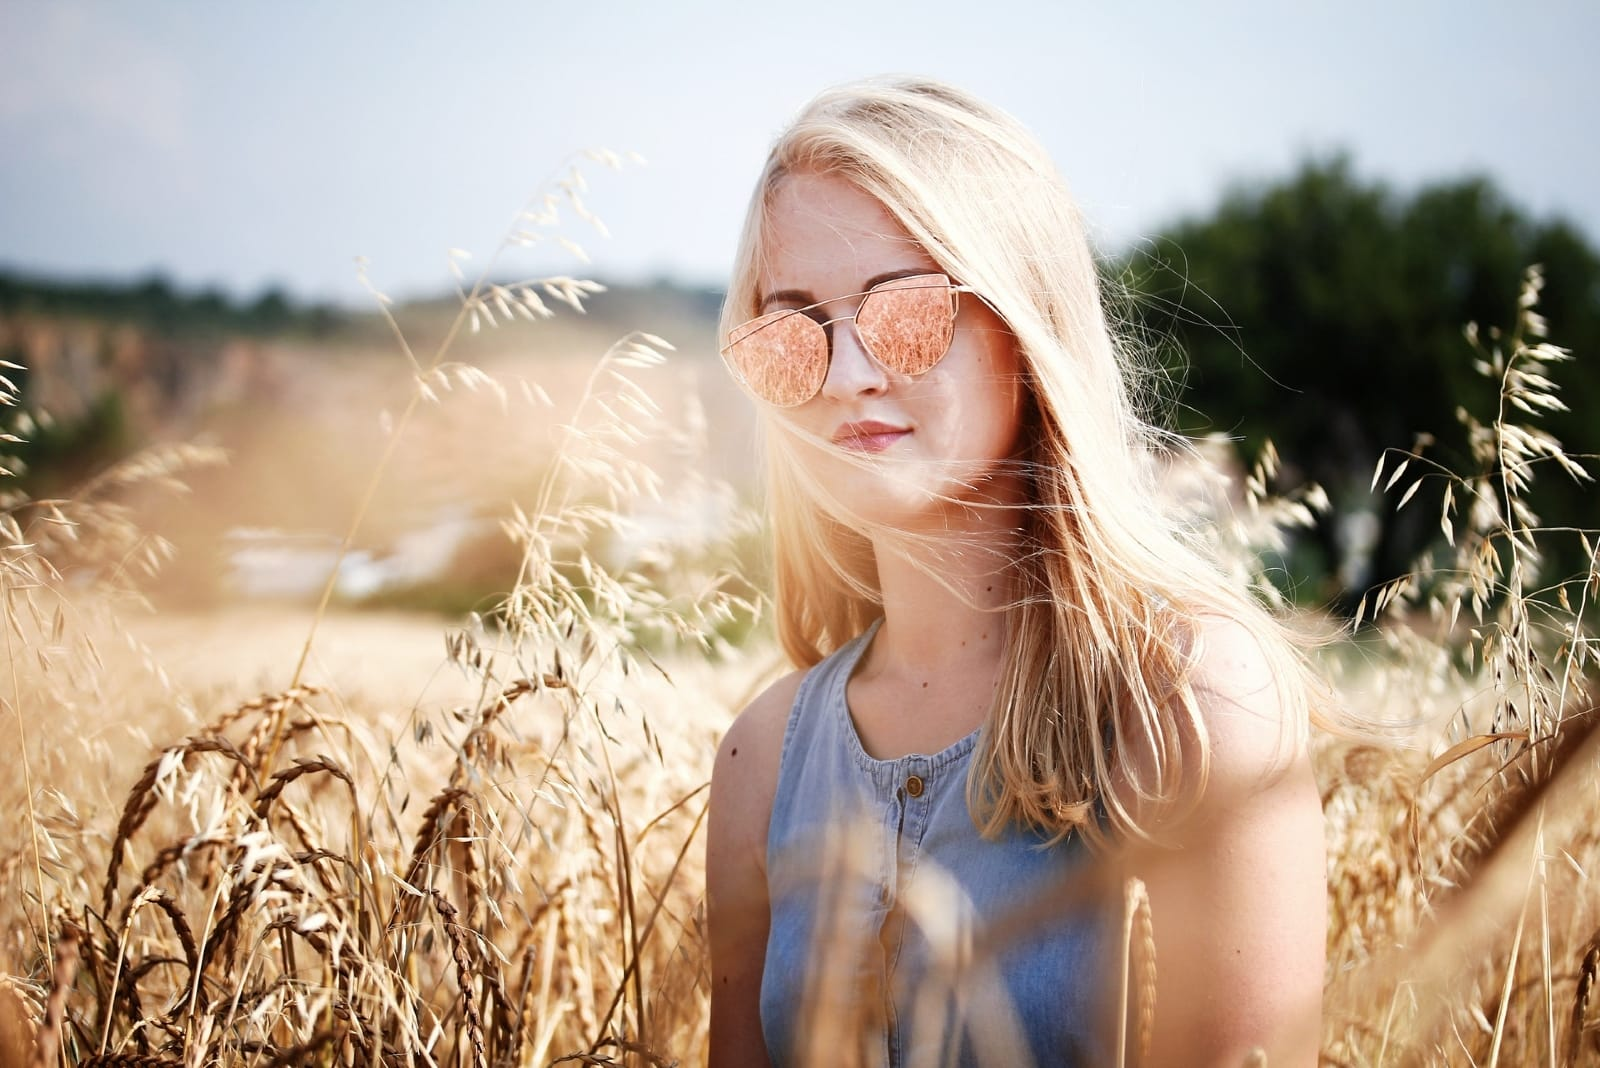 woman with sunglasses standing in wheat field